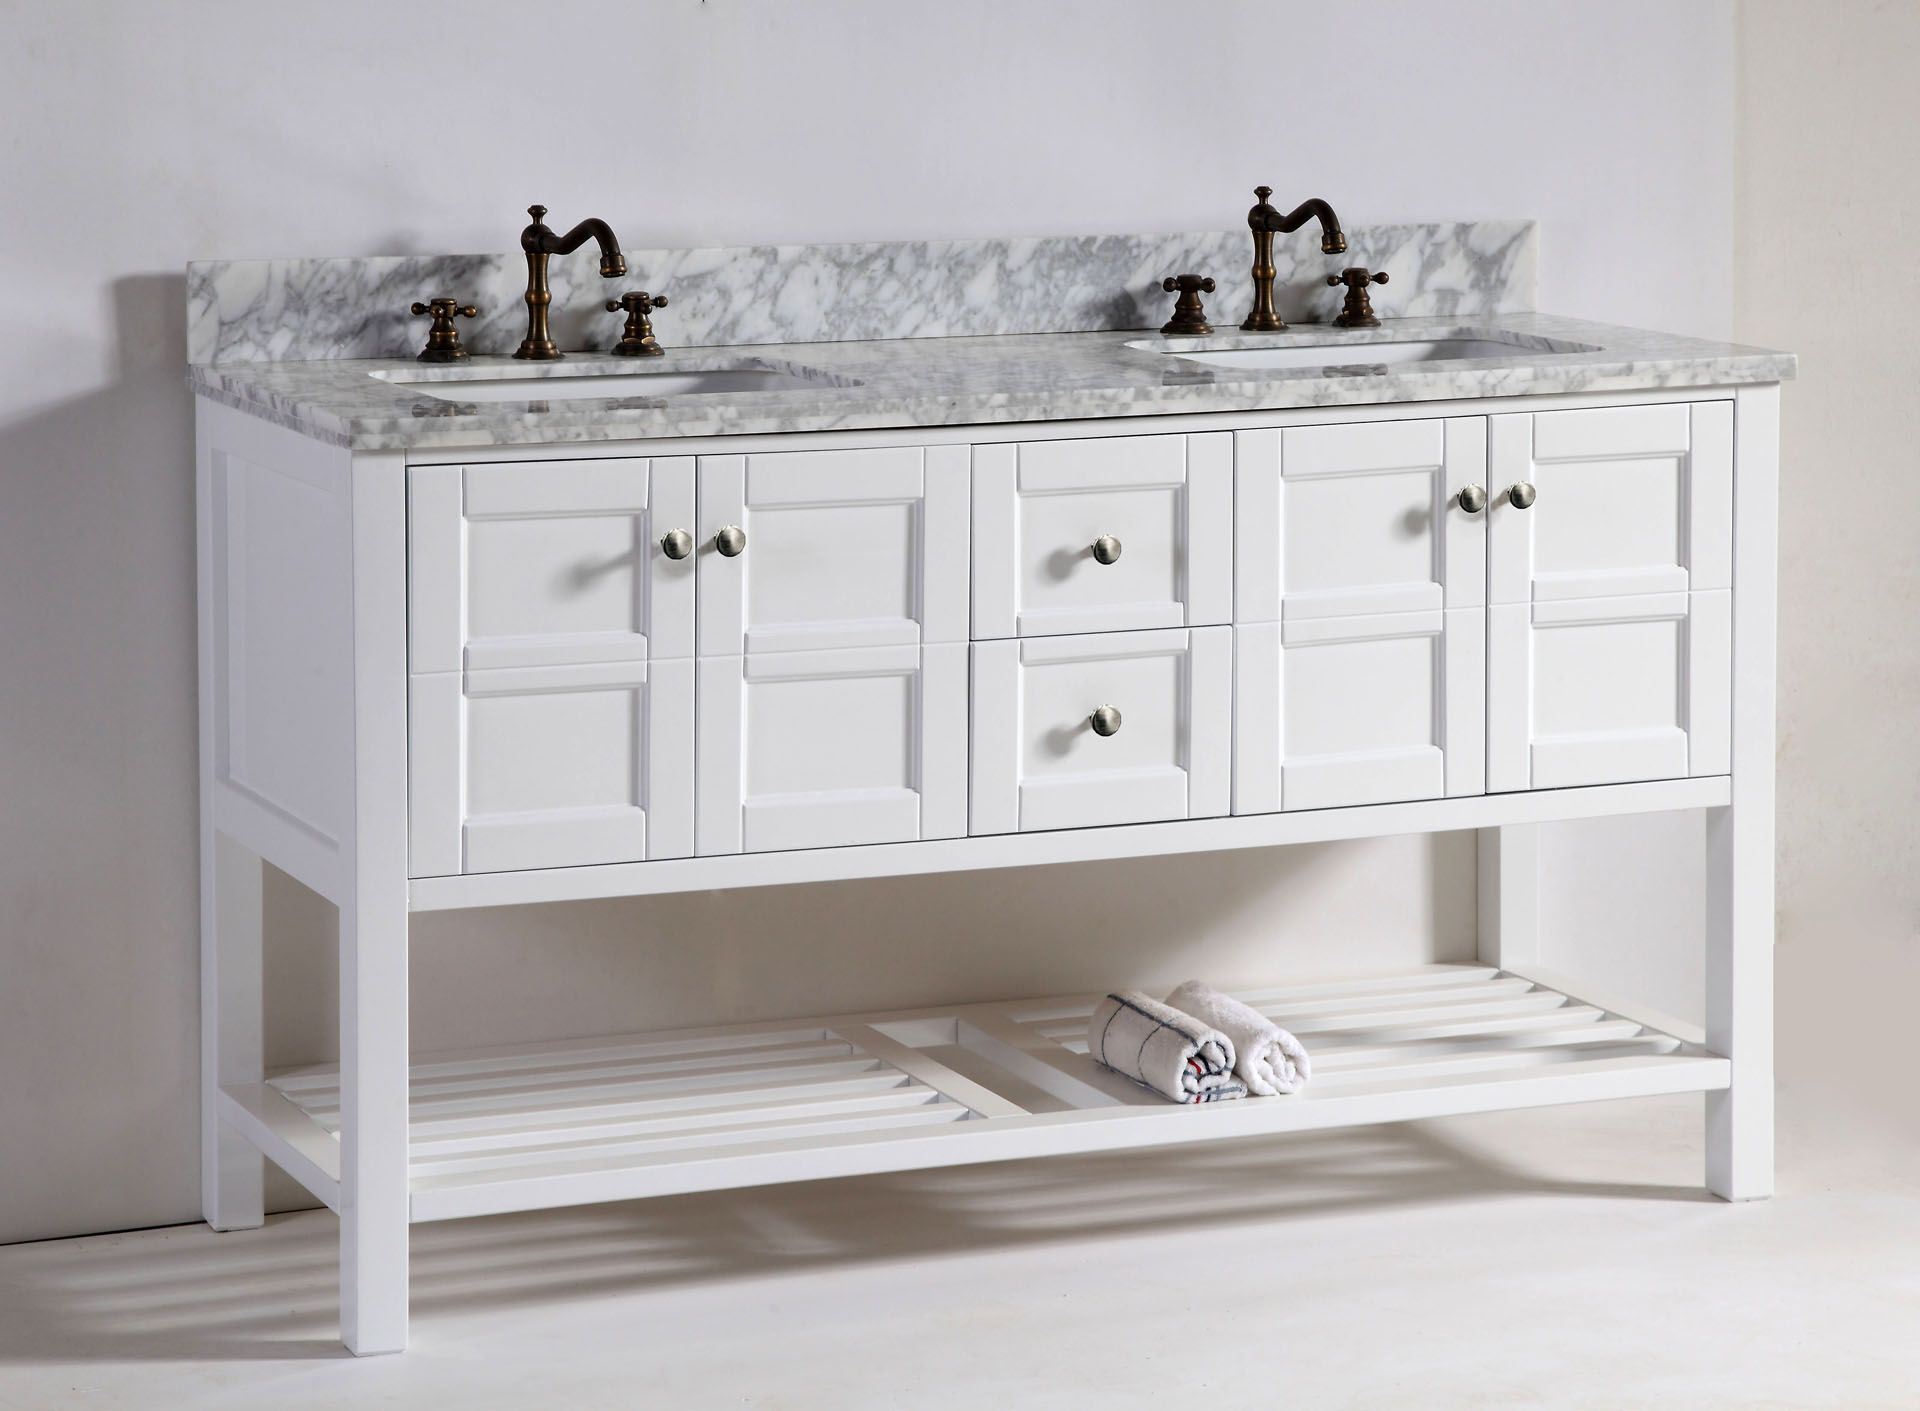 Our Brand New 60quot Leo Double Sink Vanity In White One Of